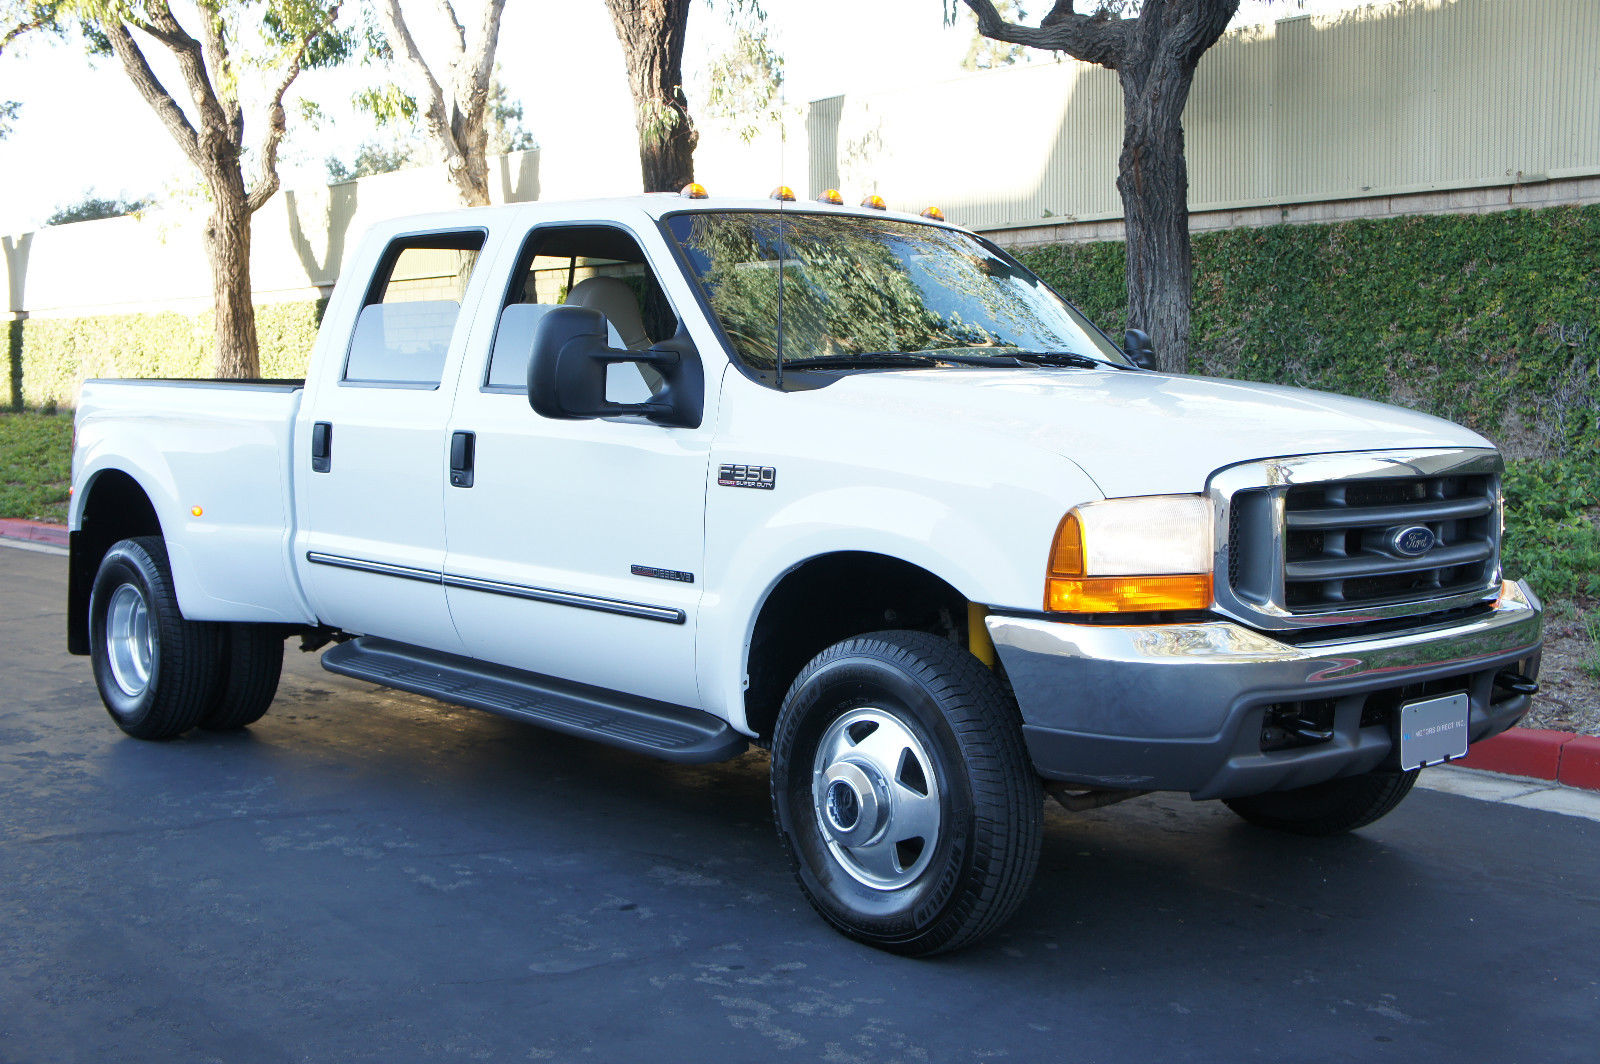 Ford F-150 Platinum For Sale >> 2000 Ford F-350 Crew Cab Short Bed Diesel for sale